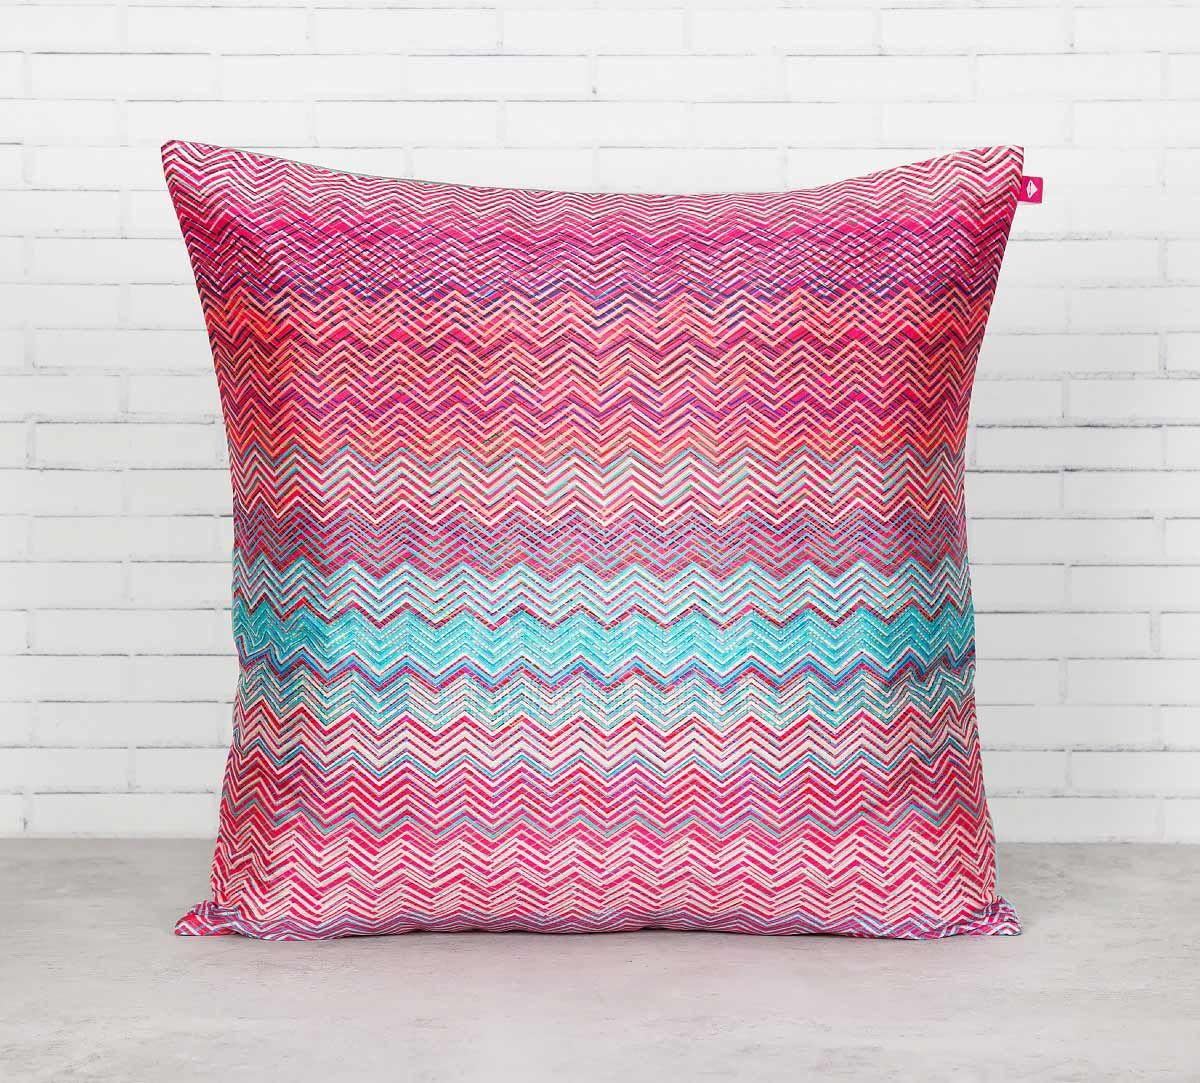 India Circus Waves of Chevron Blended Taf Silk Cushion Cover